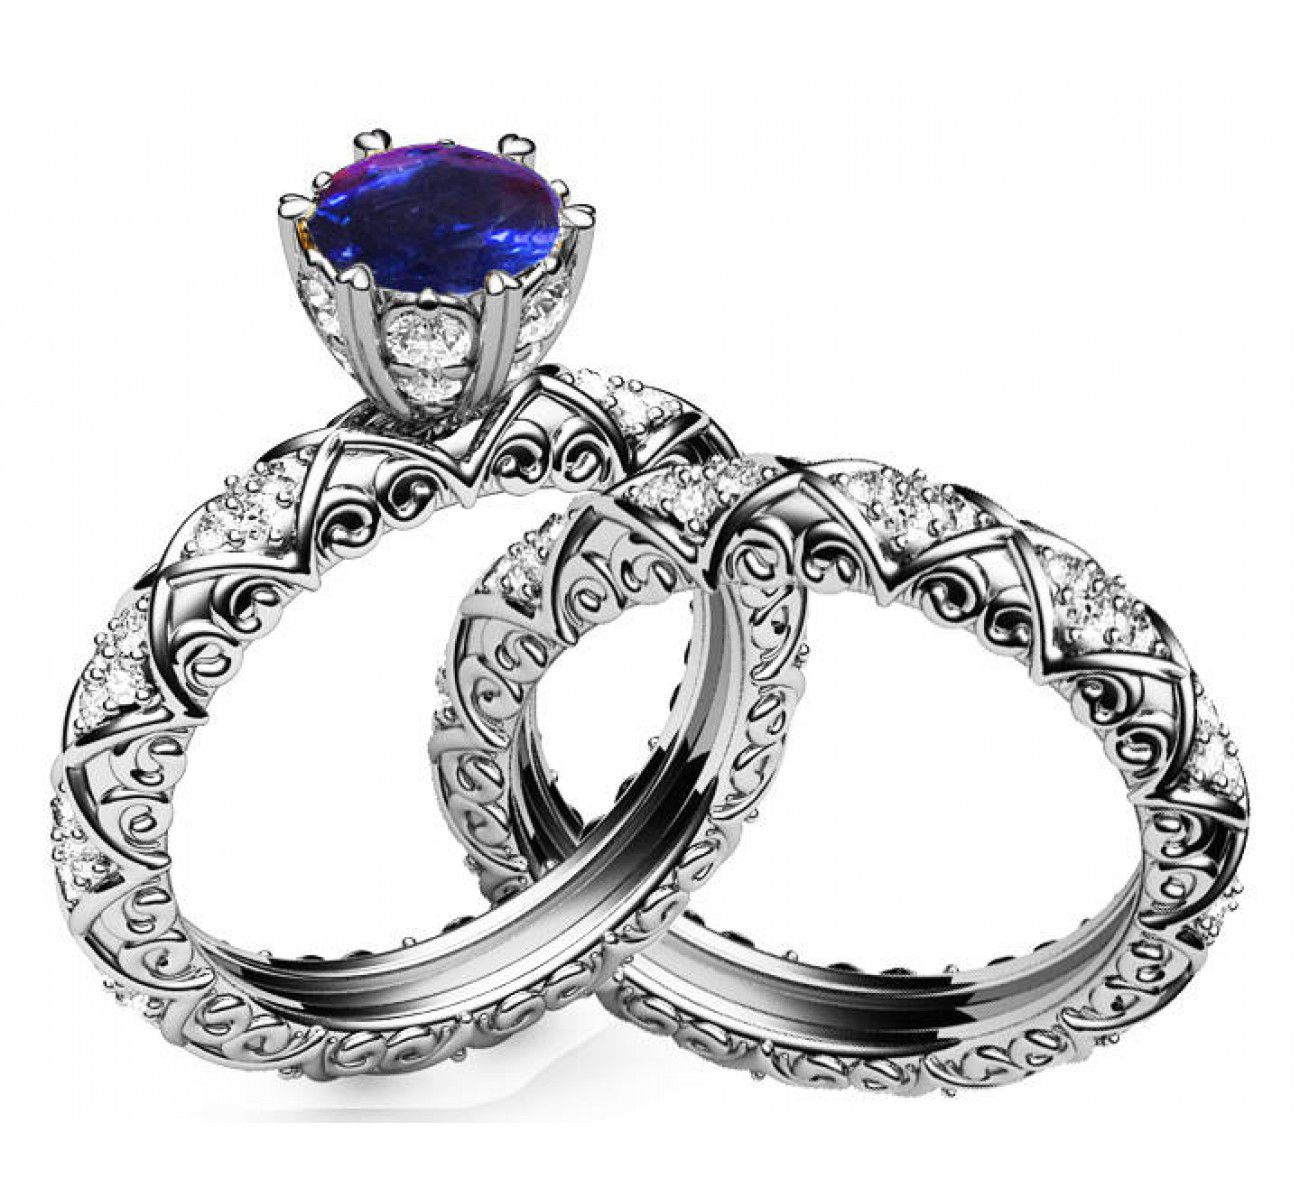 Unique Bridal Set Sapphire & Diamond Braided Pavé Engraving Matching Wedding Band In 14k Or 18k White Gold Marriage Forever Inside Most Current Diamond Braid Anniversary Bands In White Gold (View 11 of 25)